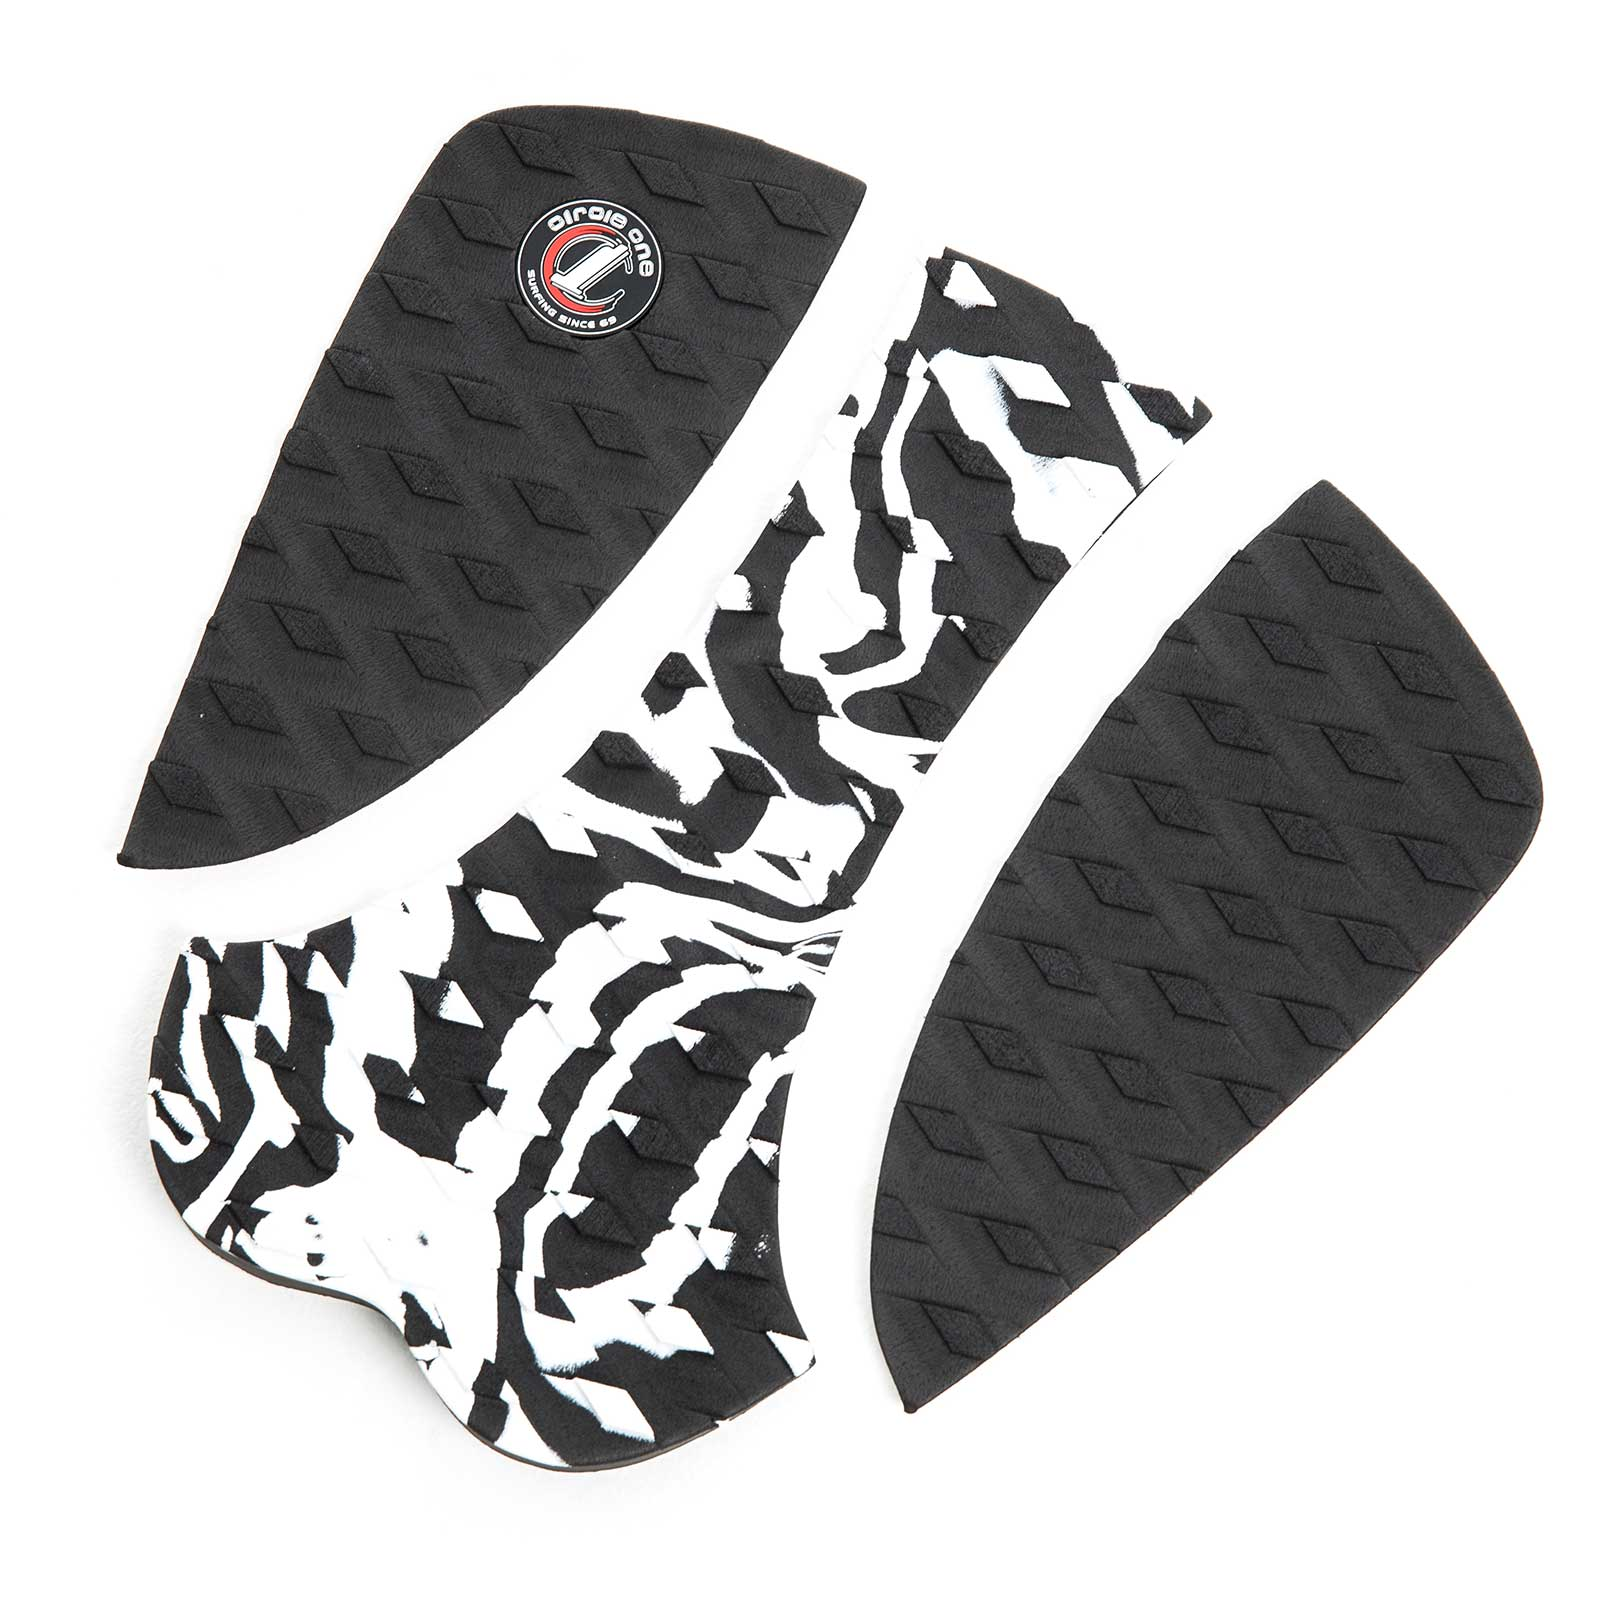 Surfboard Traction Pad Deck Grip